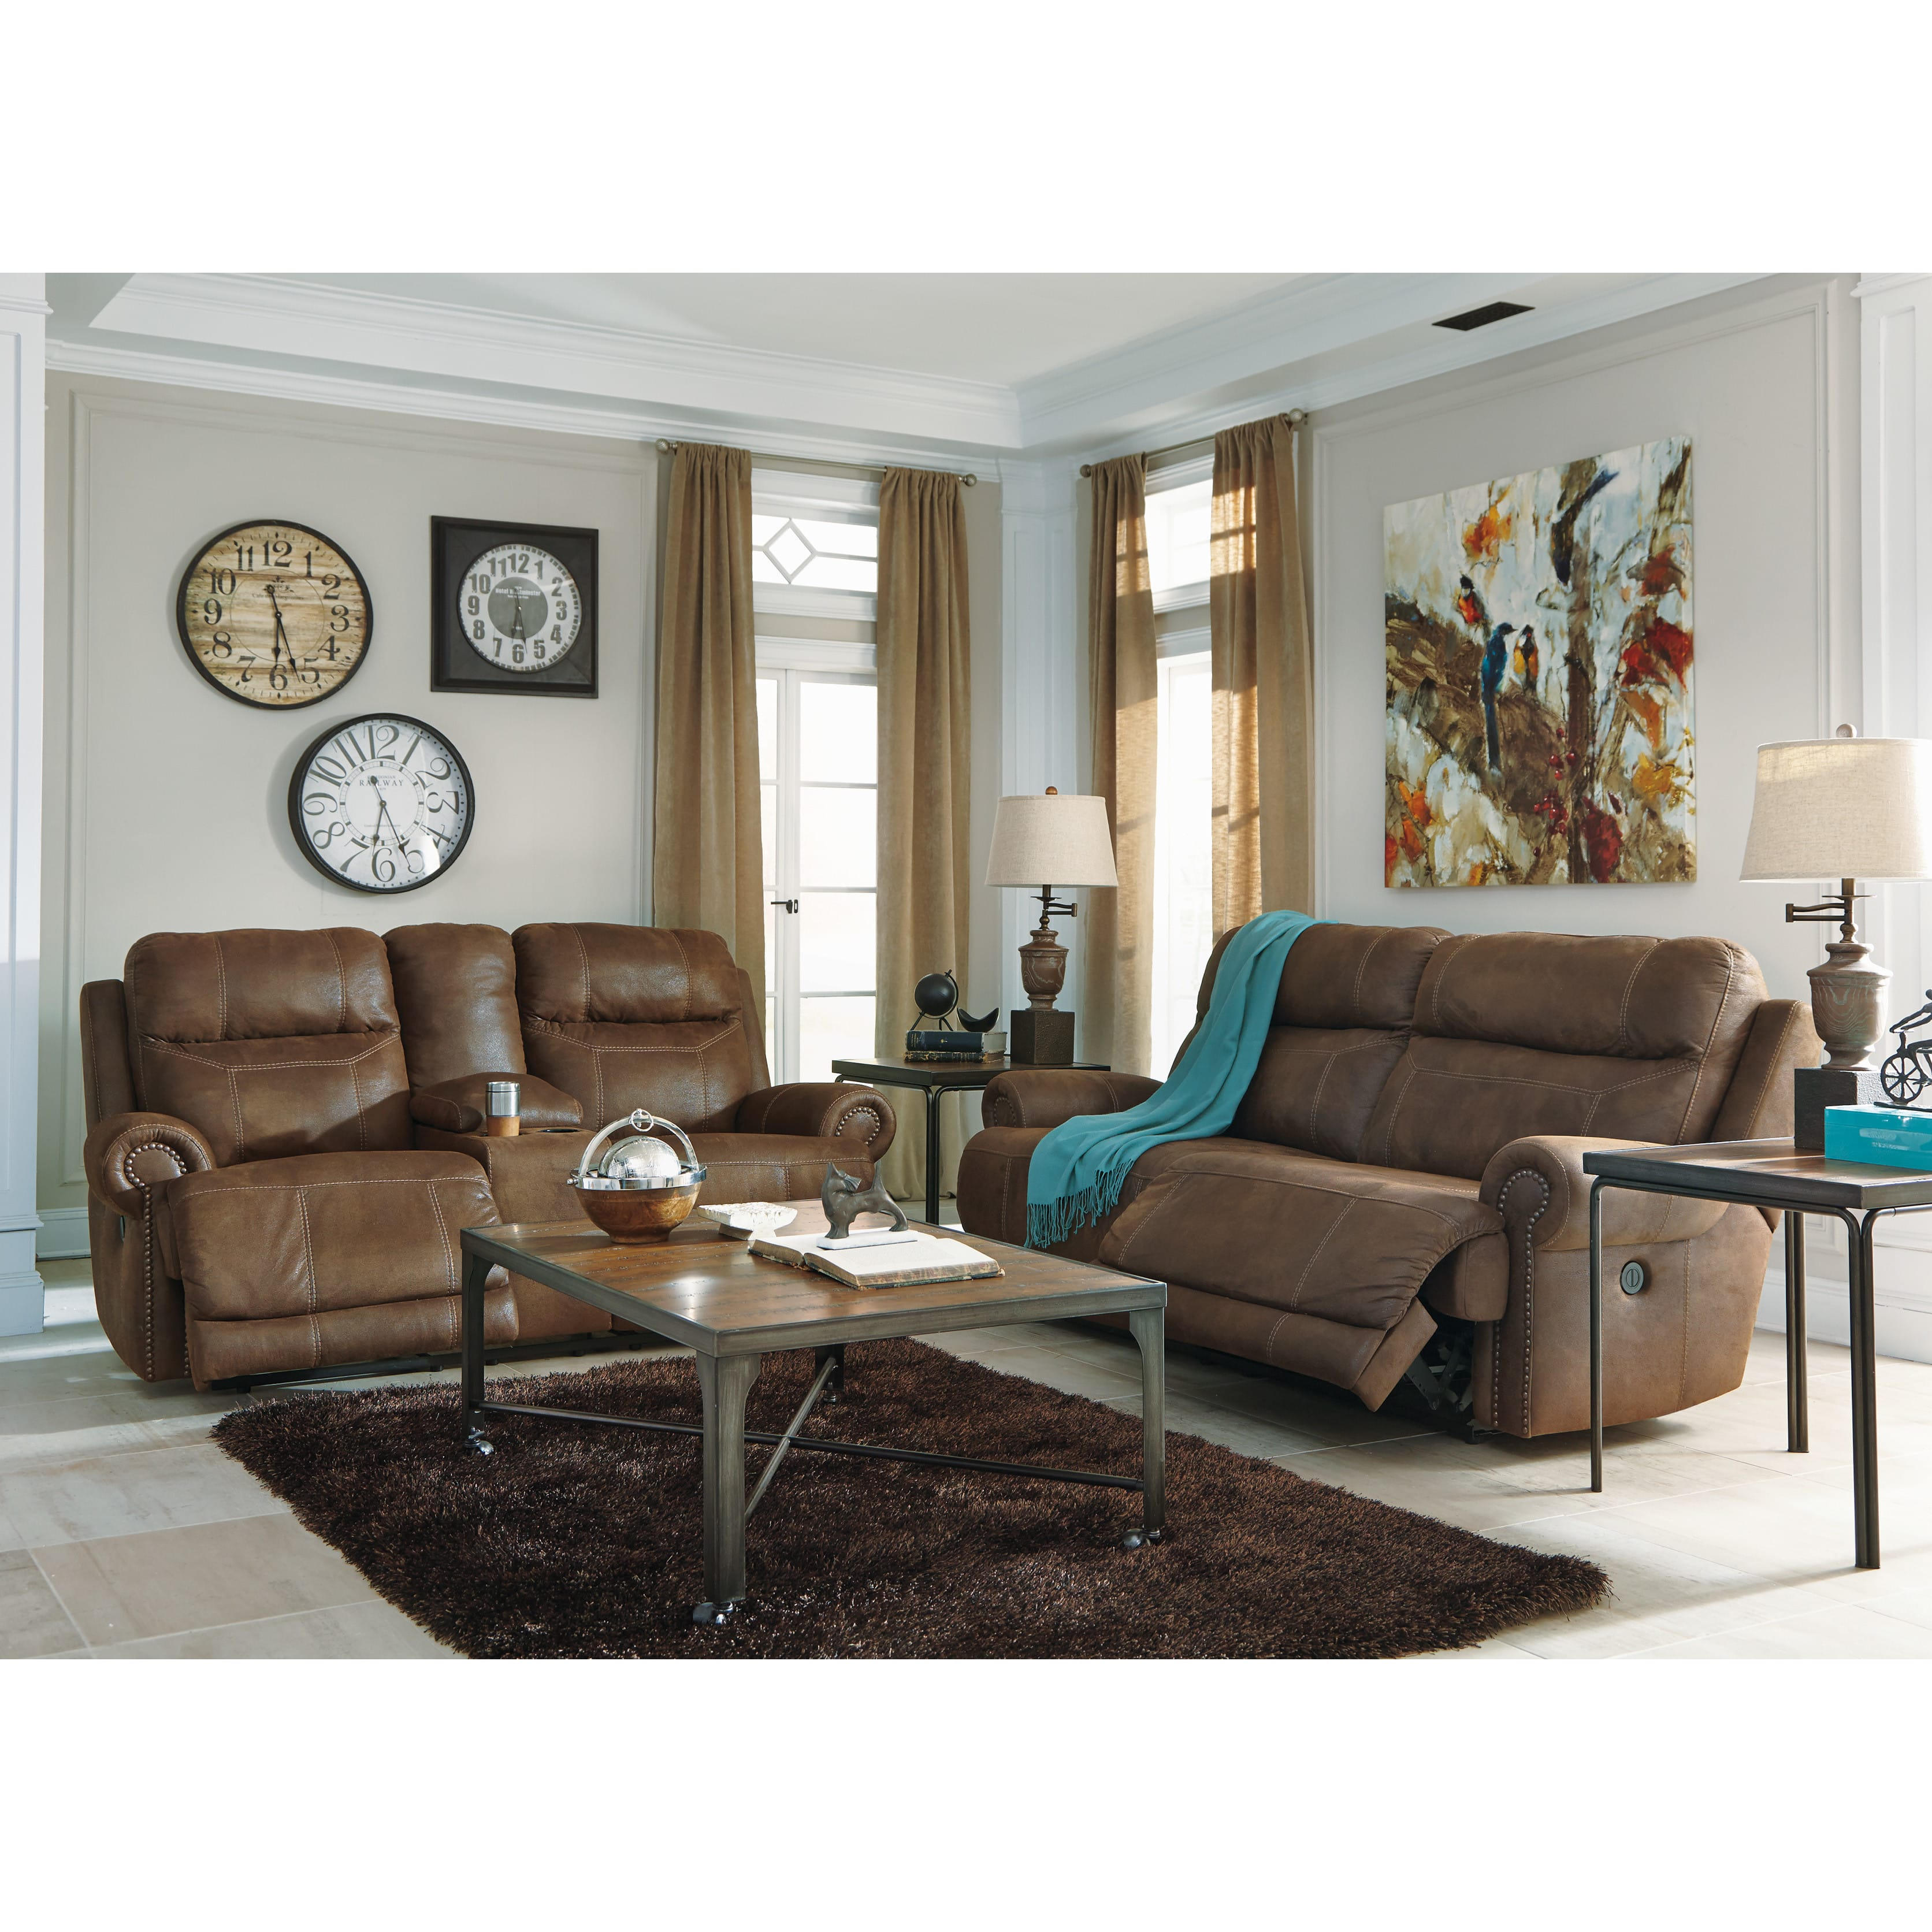 Ashley Furniture Manufacturing: Floor Sample Austere 2 Seat Brown Reclining Sofa By Ashley